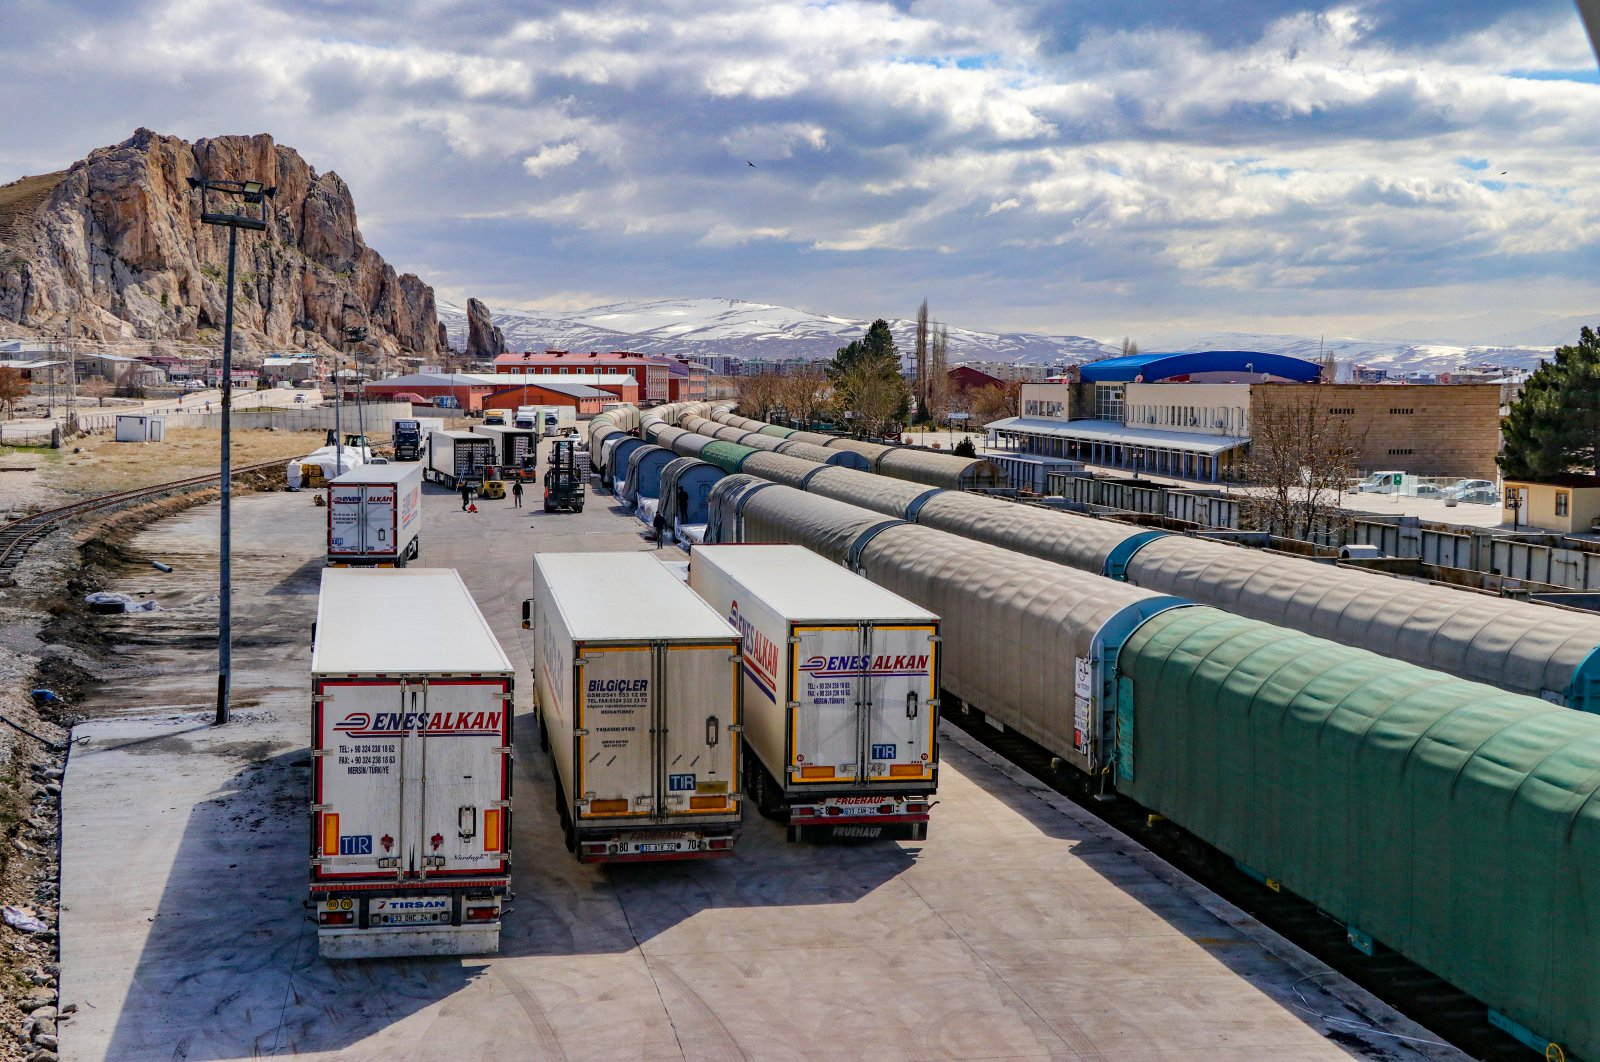 Trucks carrying goods from Turkey's southern province of Mersin and railway cars are seen near a logistics center in the eastern province of Van near the Iranian border, Monday, March 23, 2020. (AA Photo)